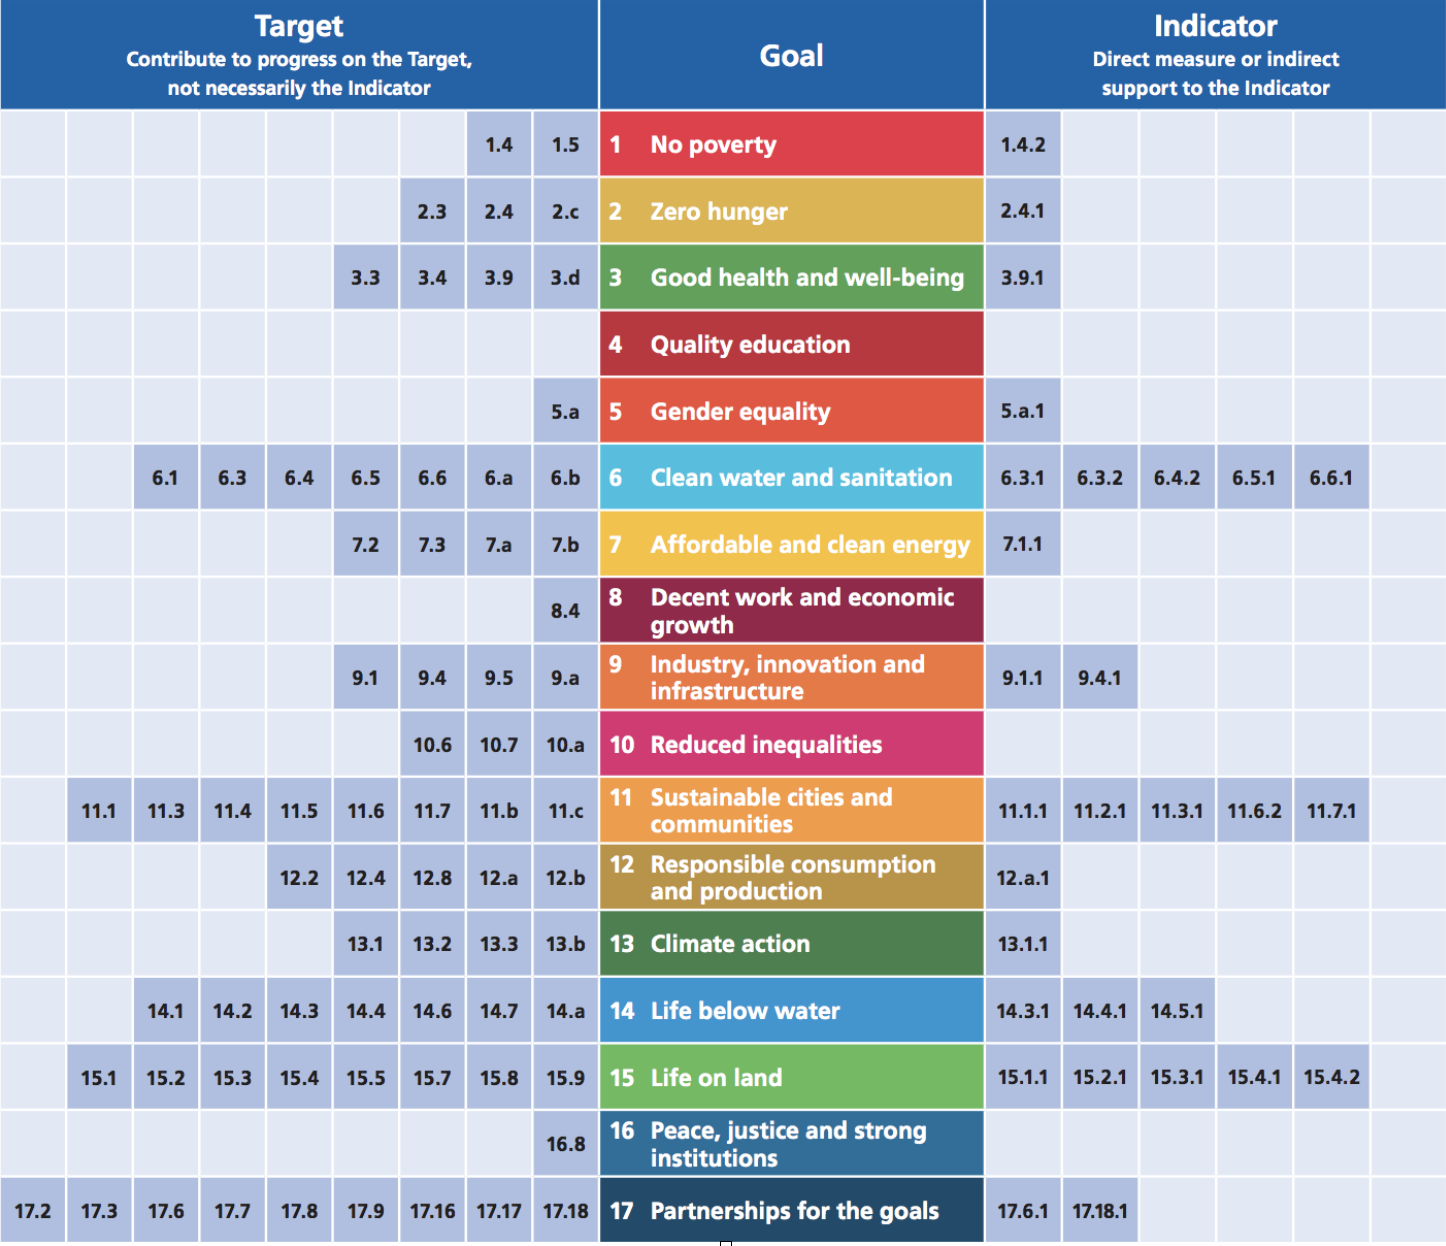 Table 1.Earth observation and geospatial information linkages to SDG goals, targets, and indicators - Reprinted with permission from Group on Earth Observations (Group on Earth Observations and United Nations Committee of Experts on Global Geospatial Information Management 2017).